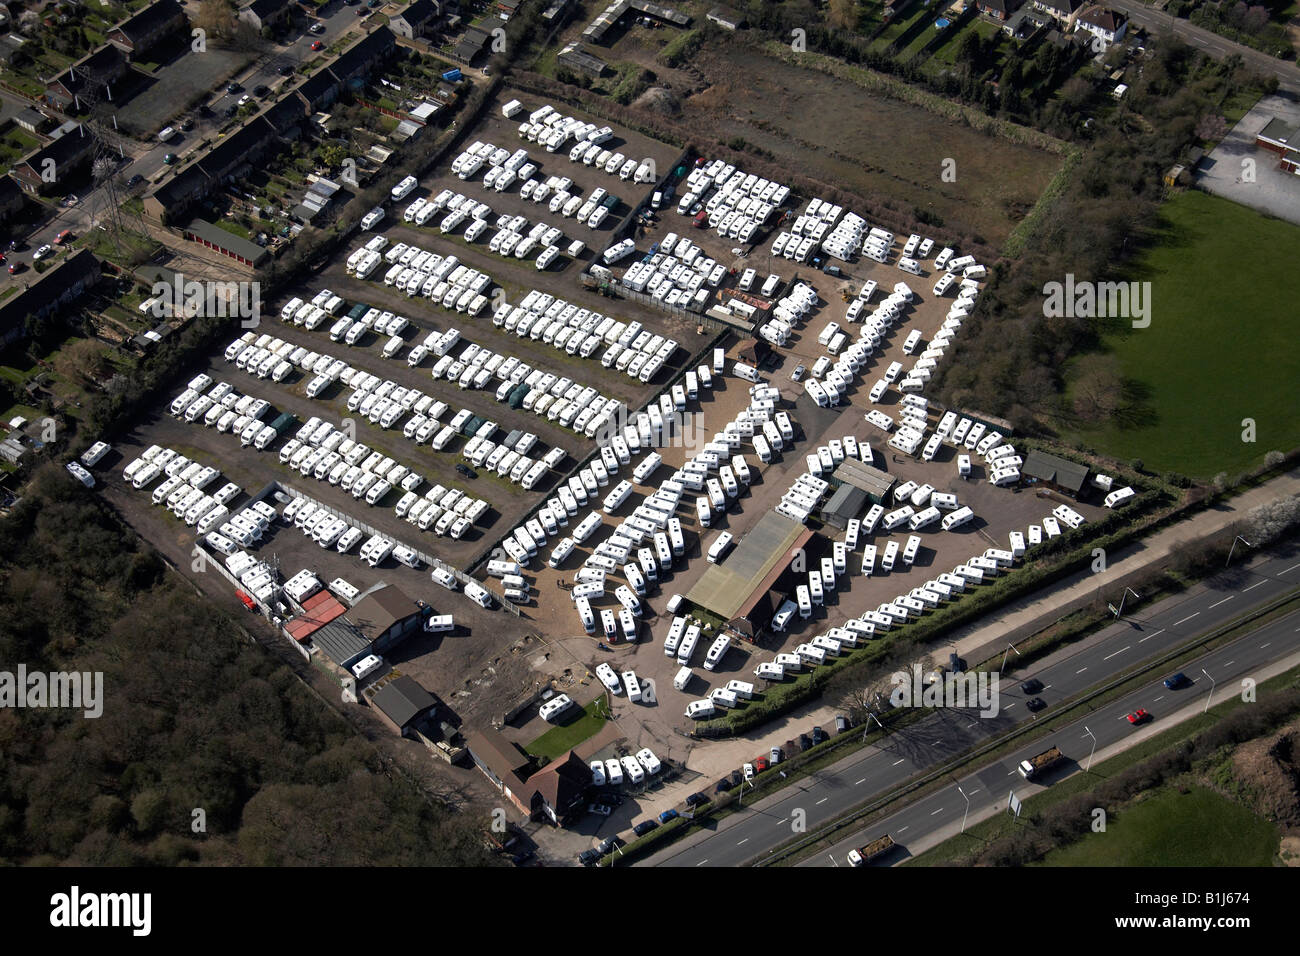 Aerial abstract view south west of caravan park Southend Arterial Road Upminster London RM14 England UK High level - Stock Image